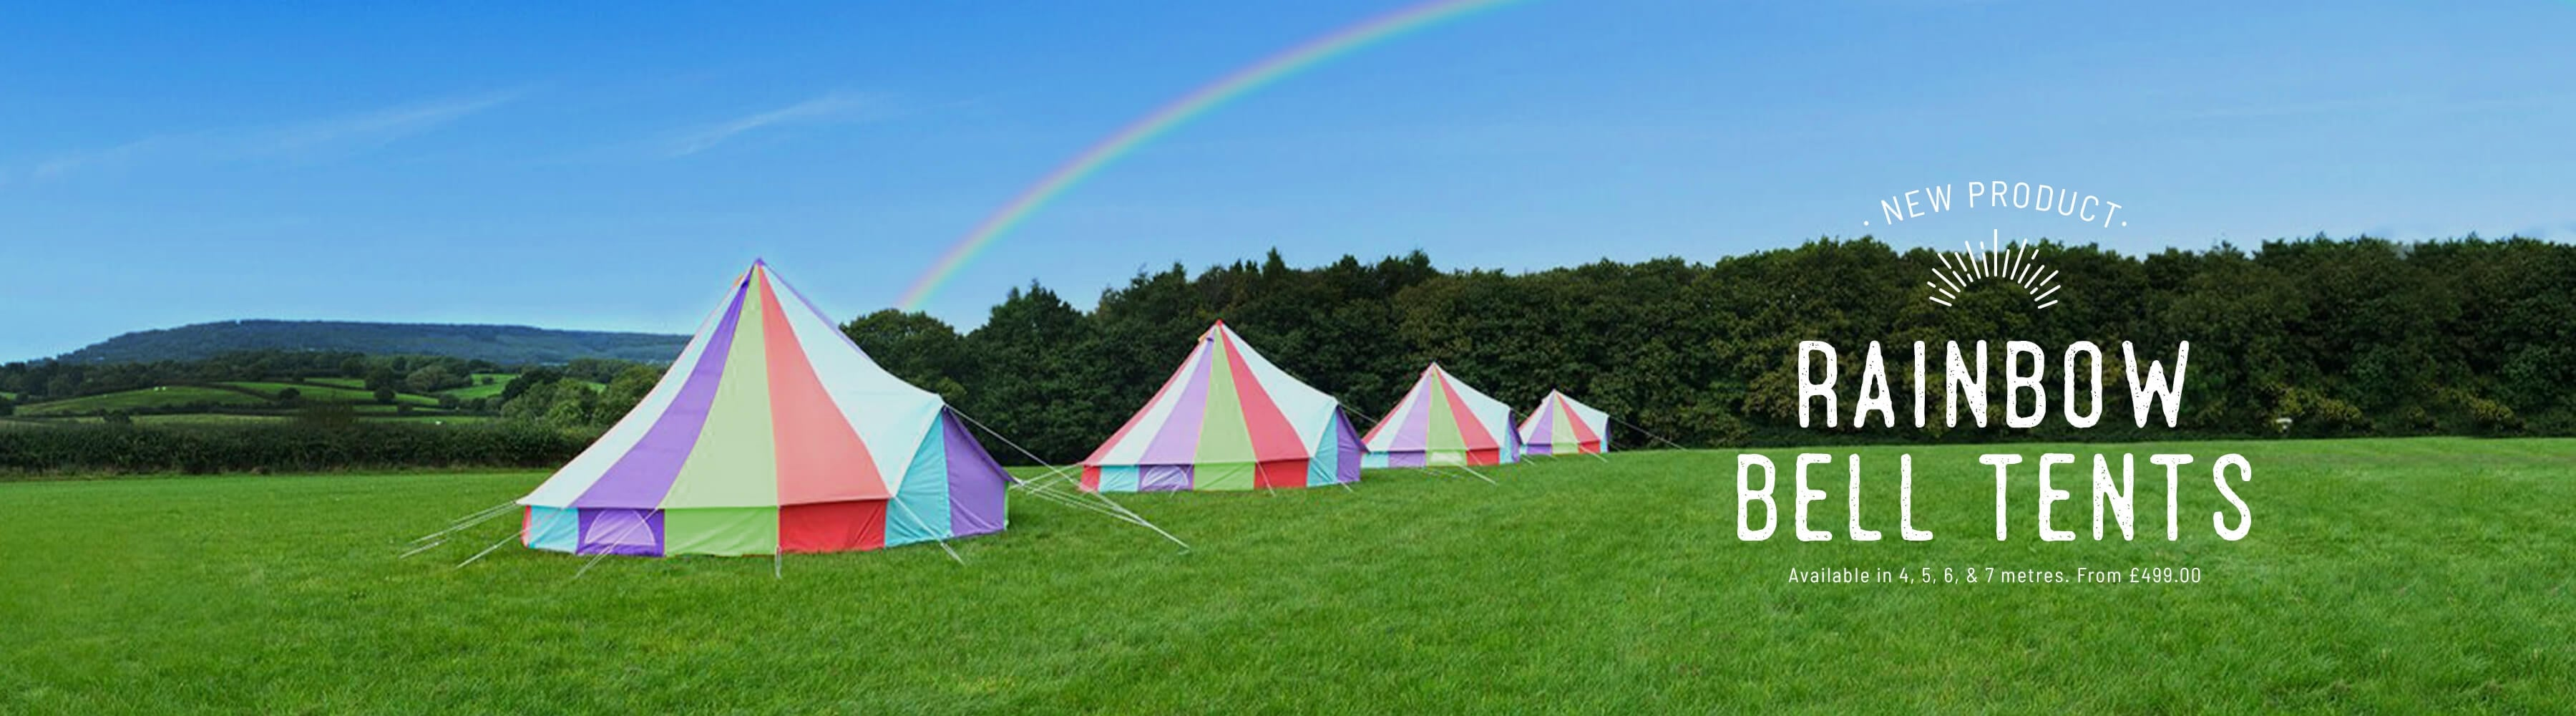 Rainbow Bell Tents : london tube tent - memphite.com